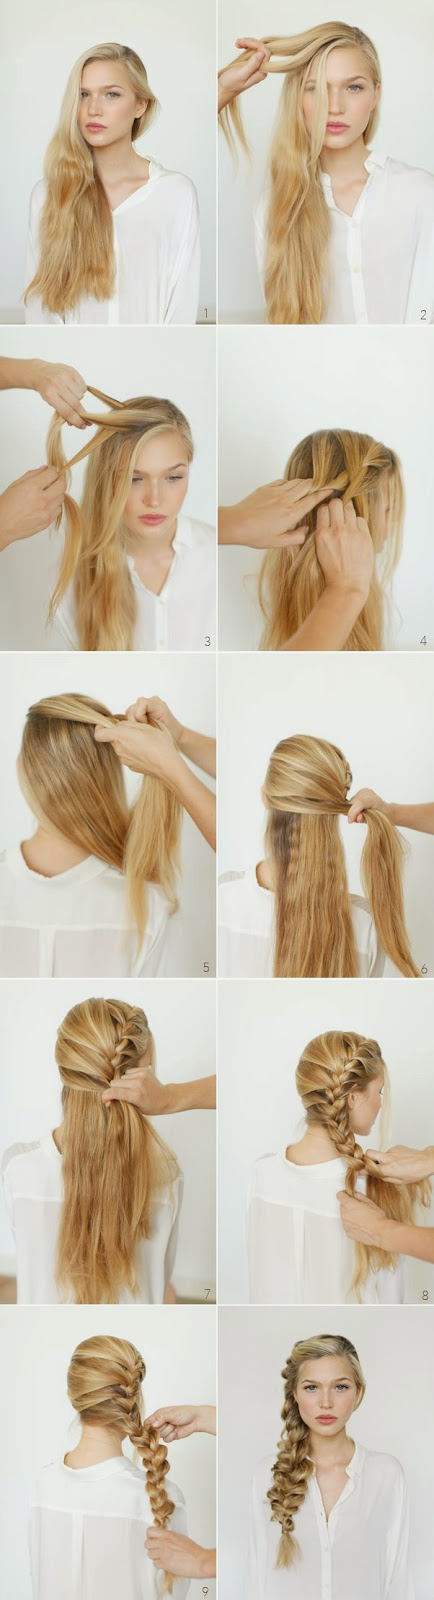 Romantic Hairstyle Ideas and Tutorials for the Aphrodite cabin